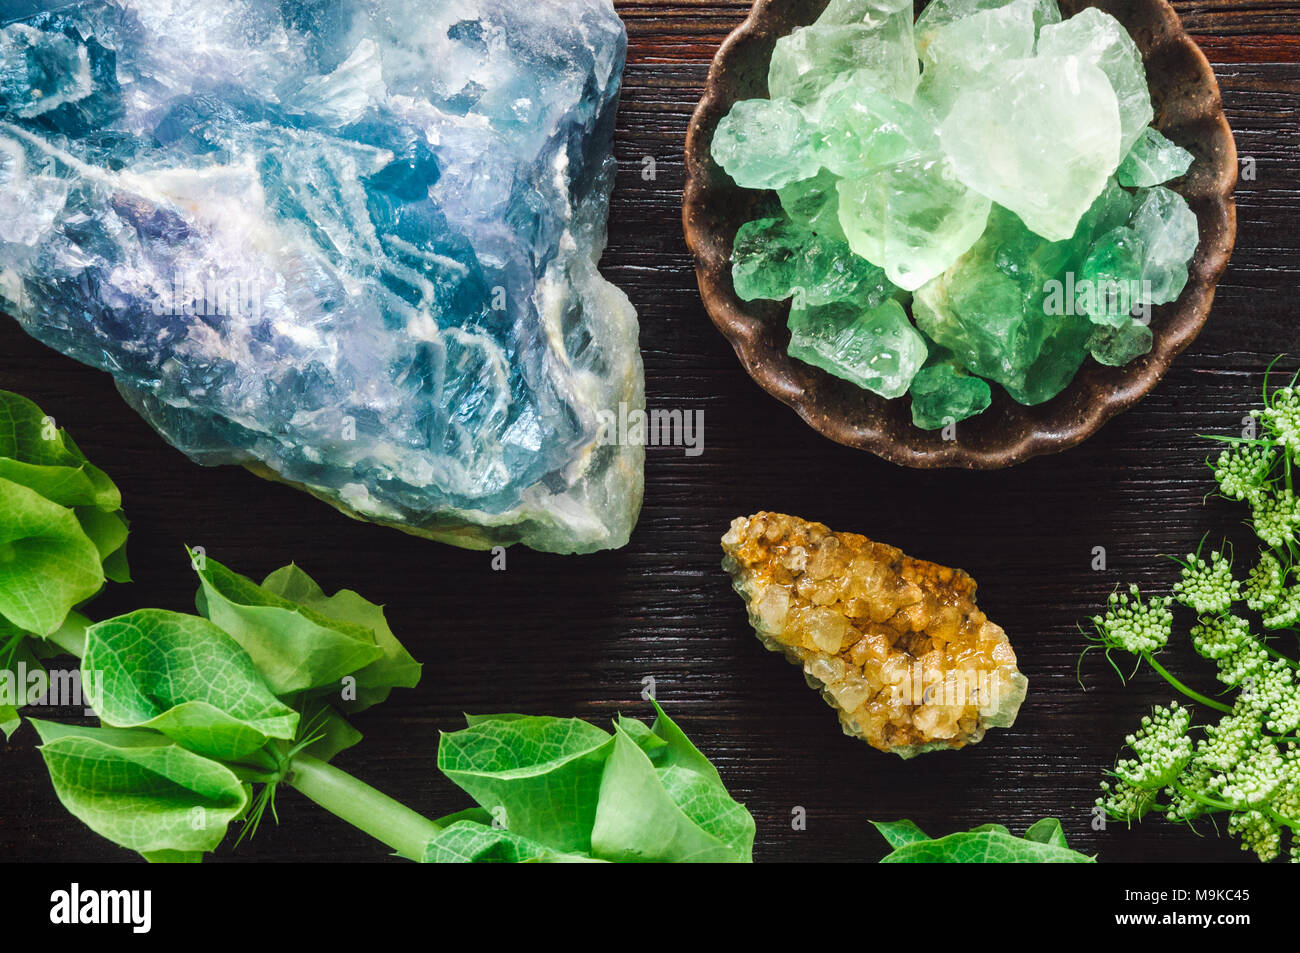 A Variety of Flourite with Assorted Botanicals - Stock Image